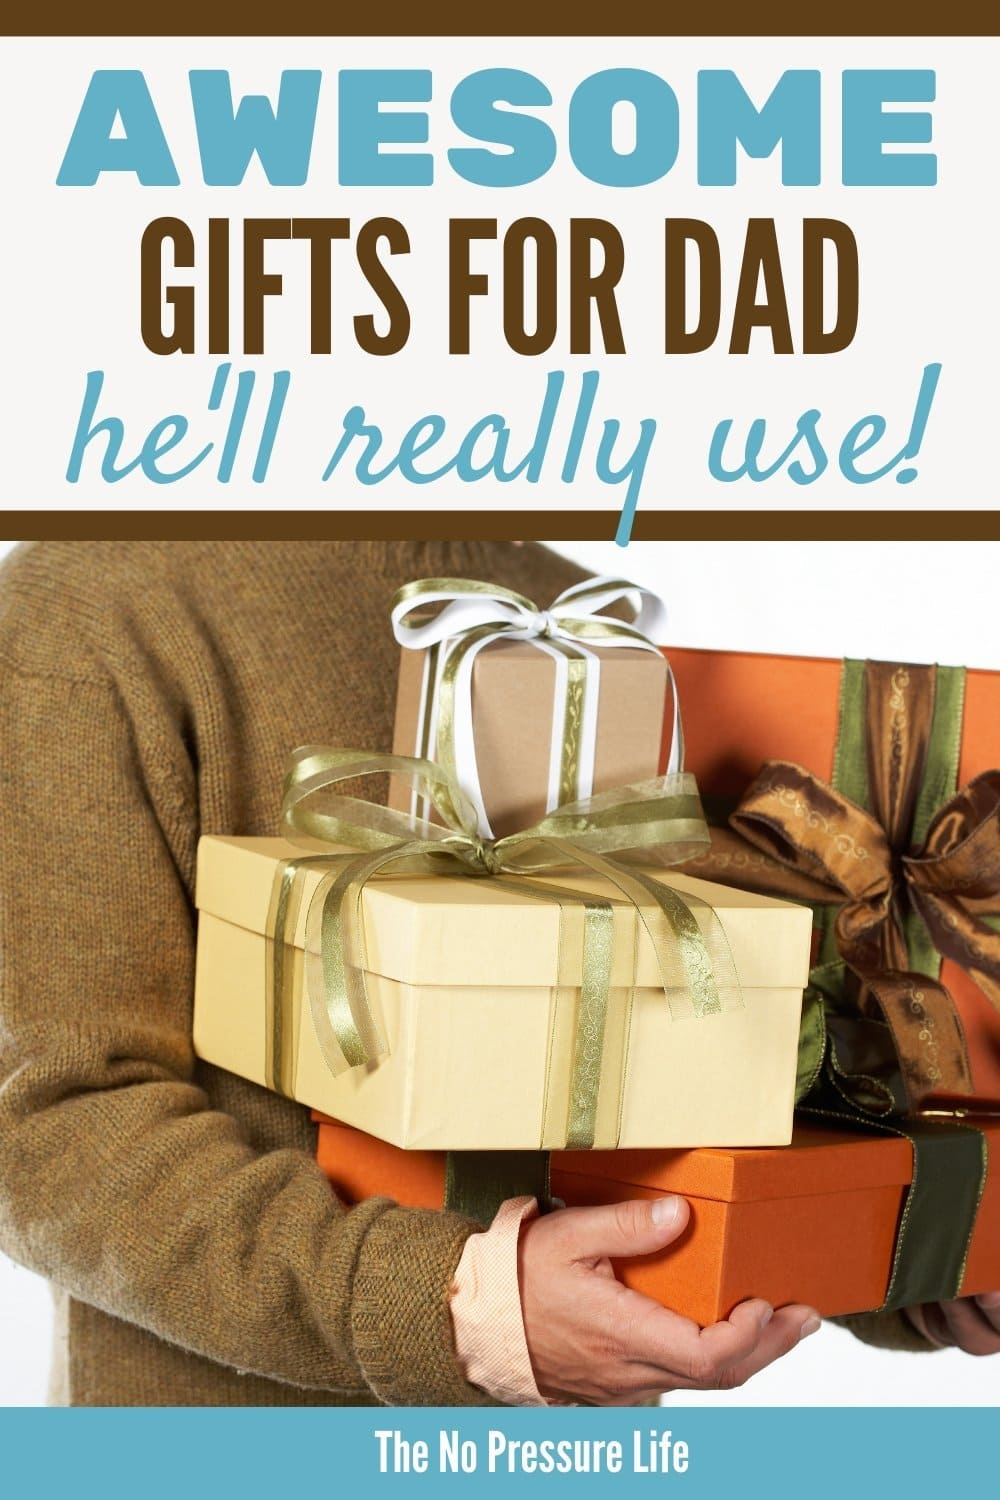 Practical Gift Ideas for Dad and Grandpa